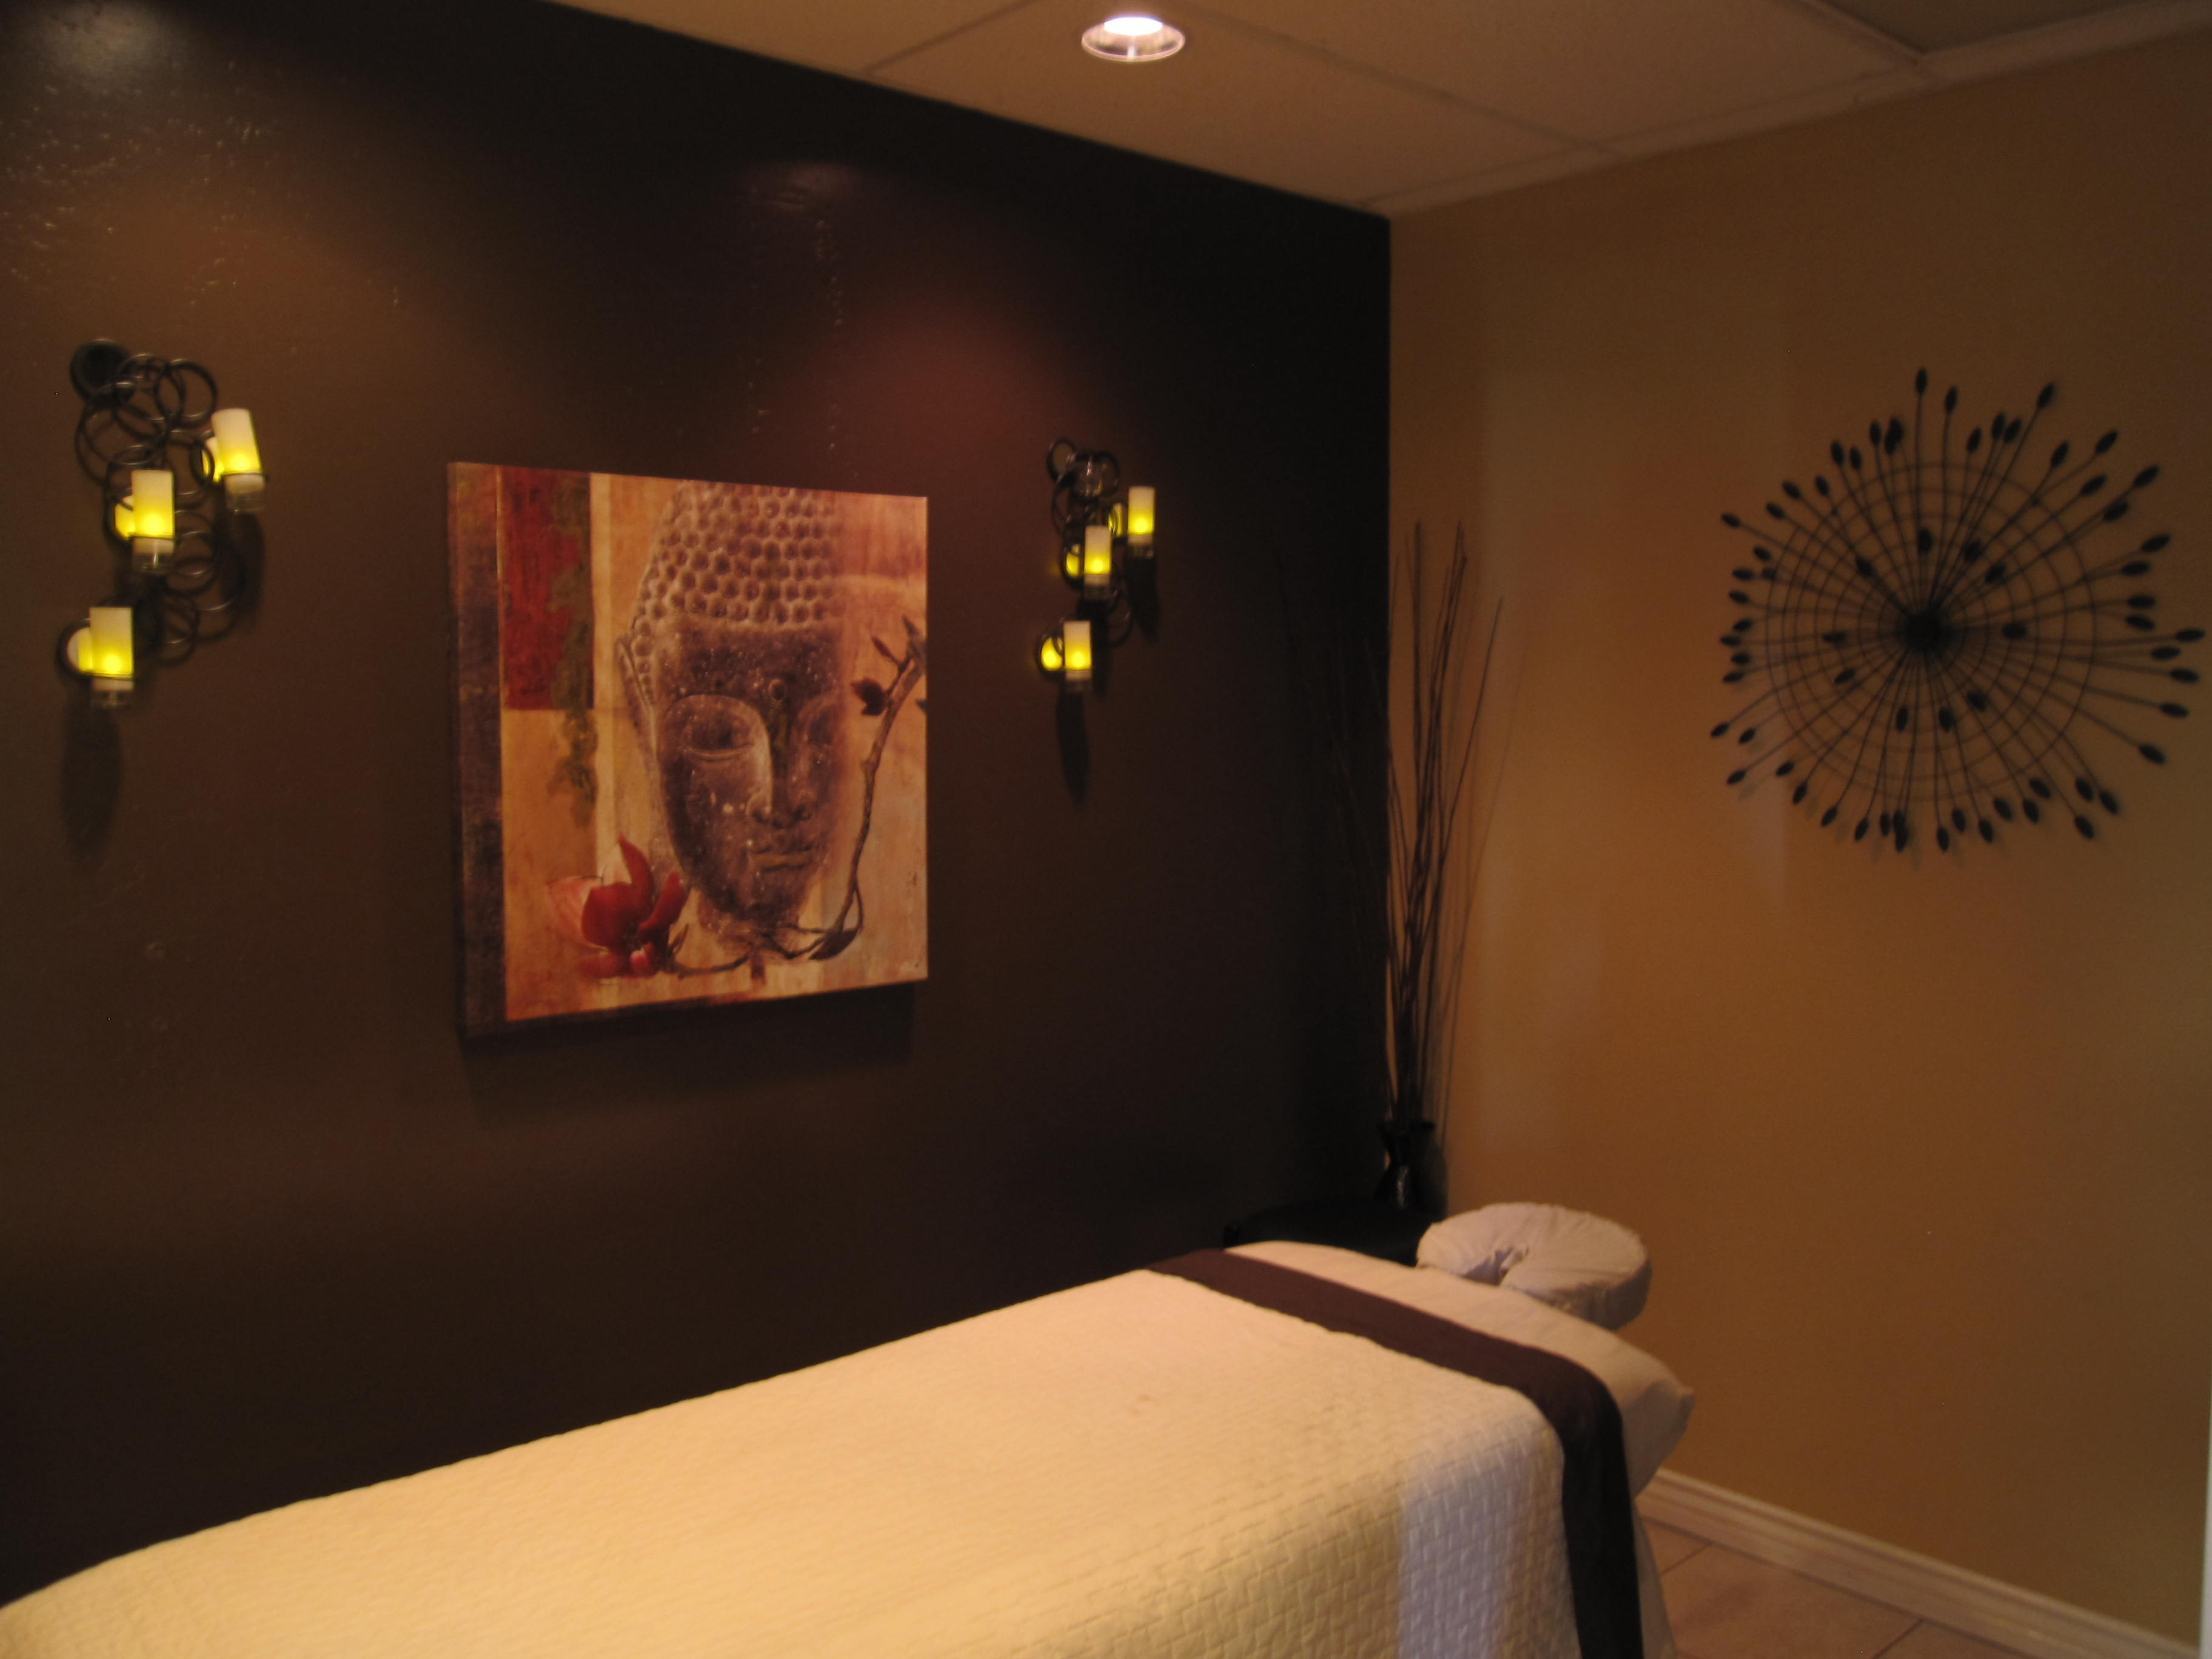 Estee Massage Services 13300 Old Blanco Rd, San Antonio, Tx 78216 - Ypcom-8442